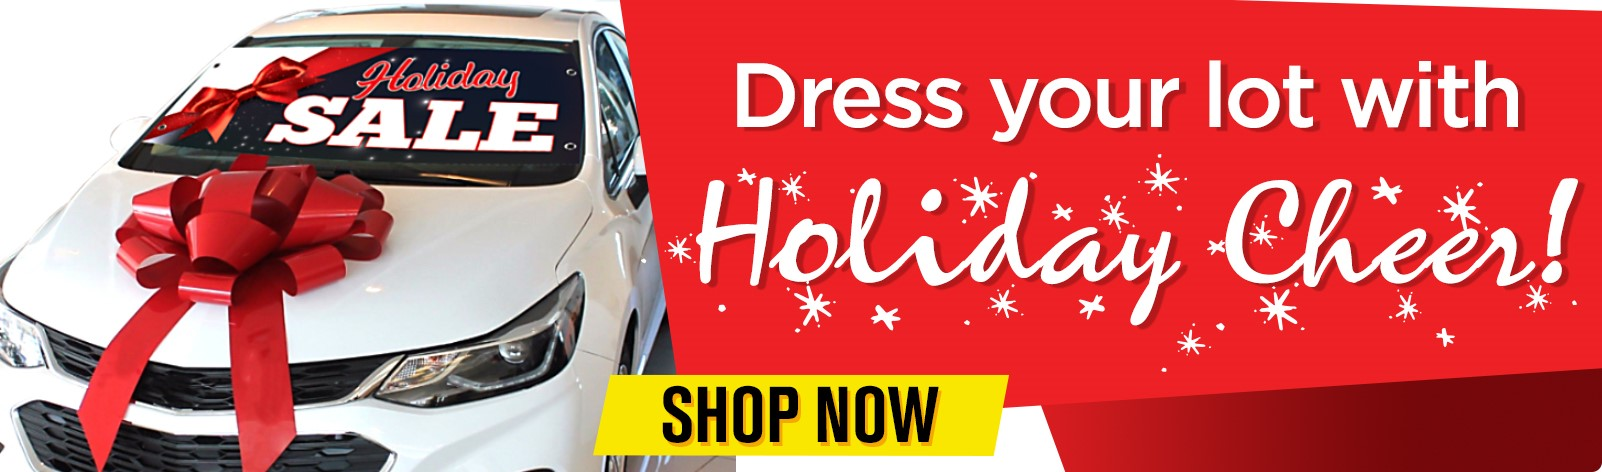 Dress your car dealership's lot with holiday cheer!